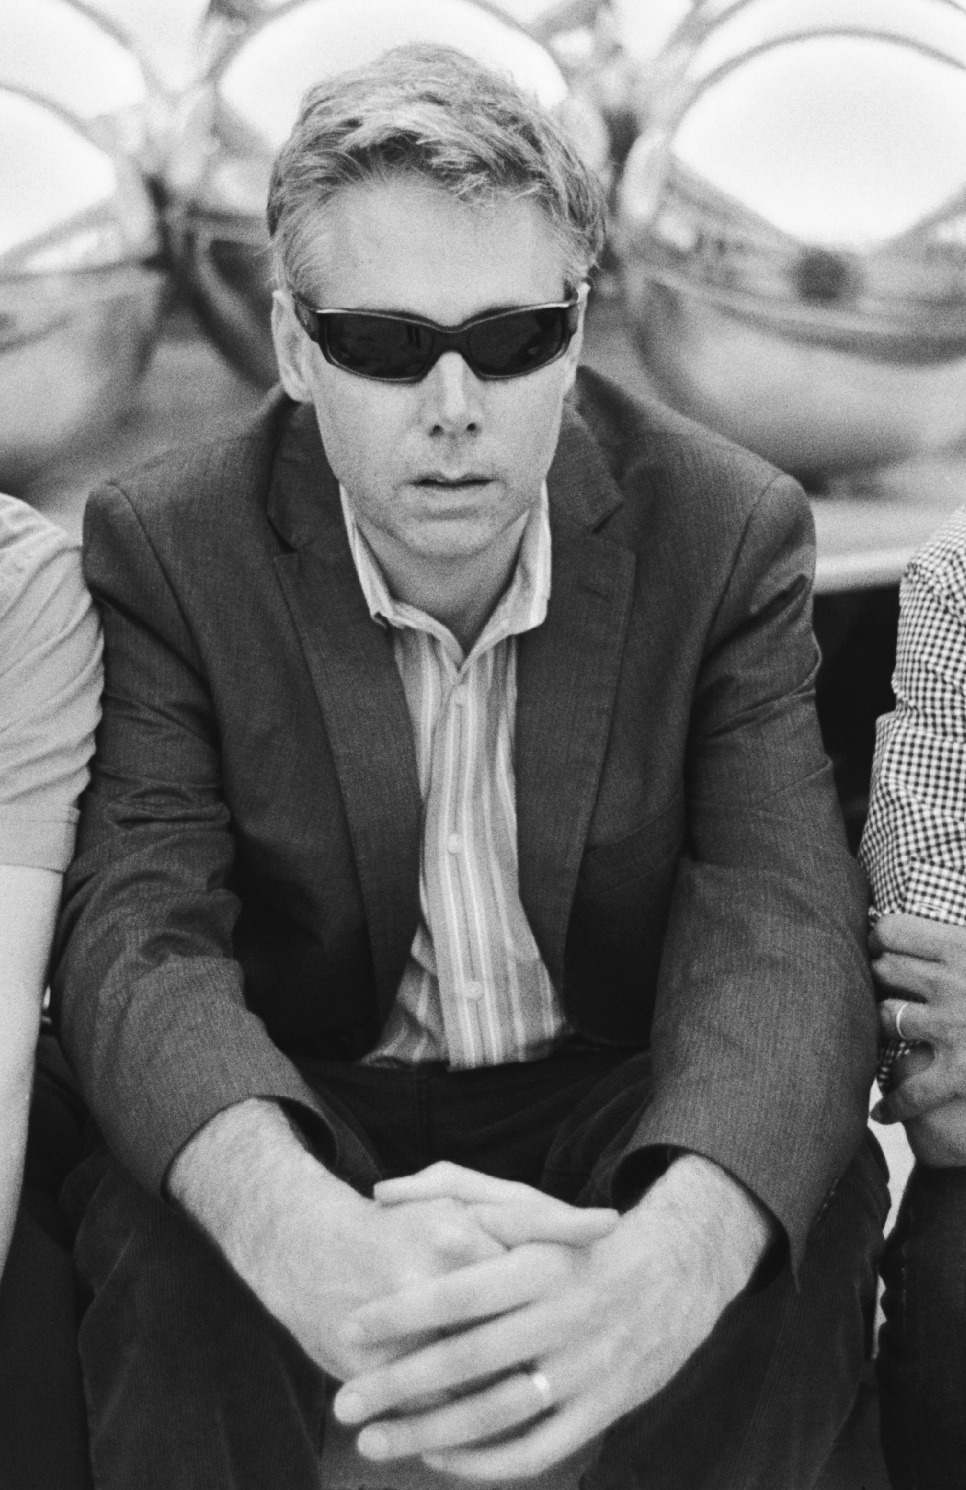 adam-yauch-beastie-boys.jpg